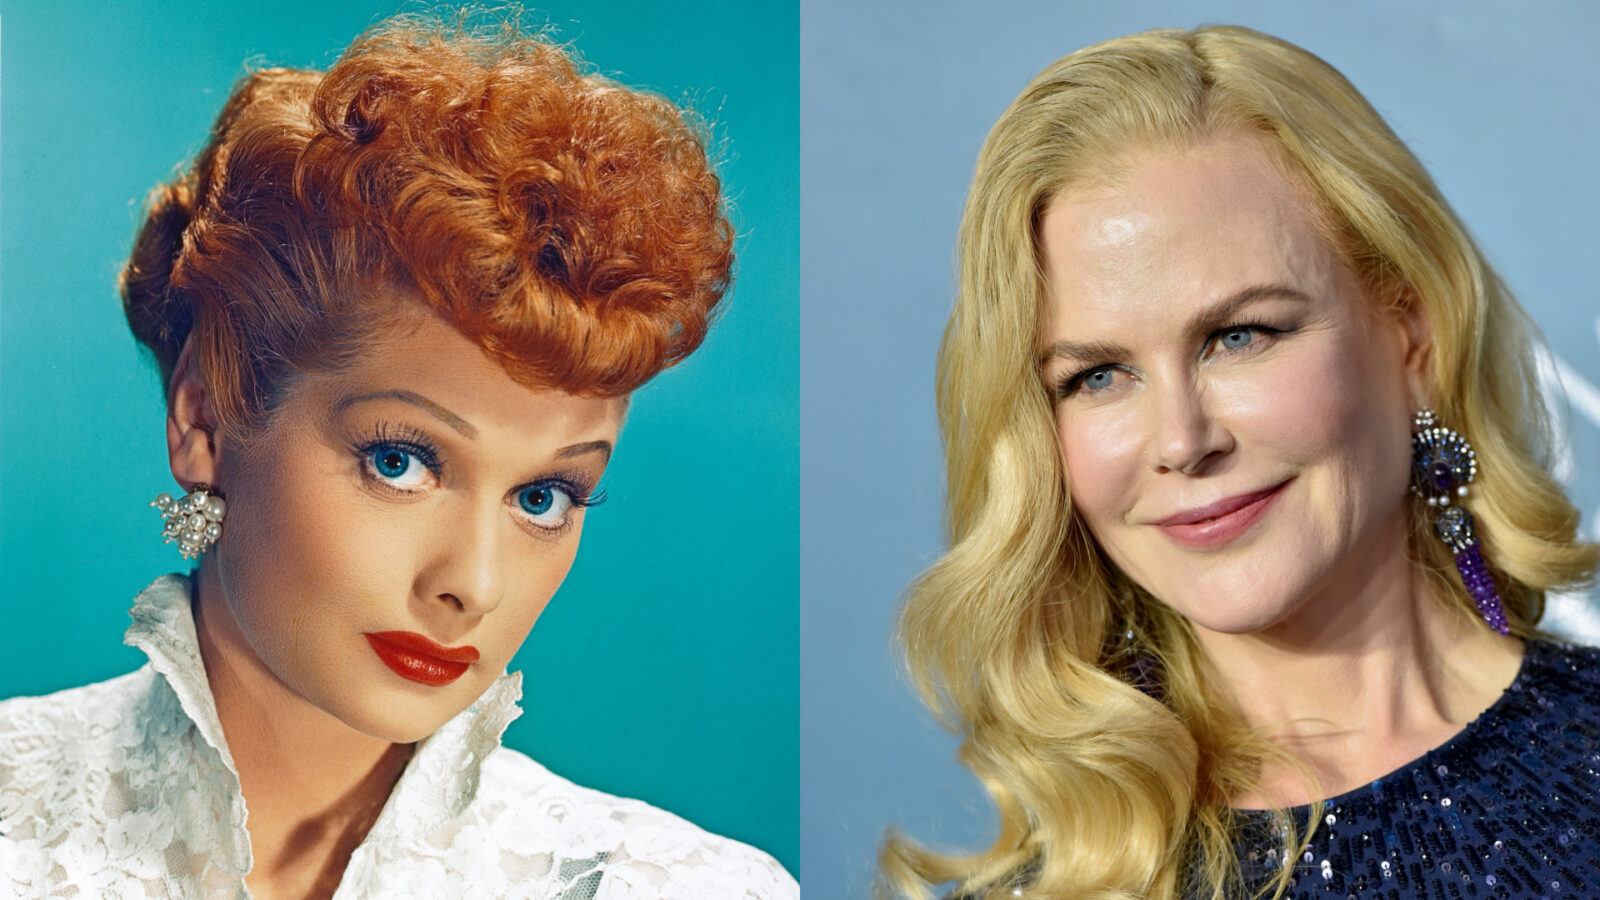 nicole-kidman-gushes-over-getting-to-portray-lucille-ball-following-fans-protests-against-her-casting